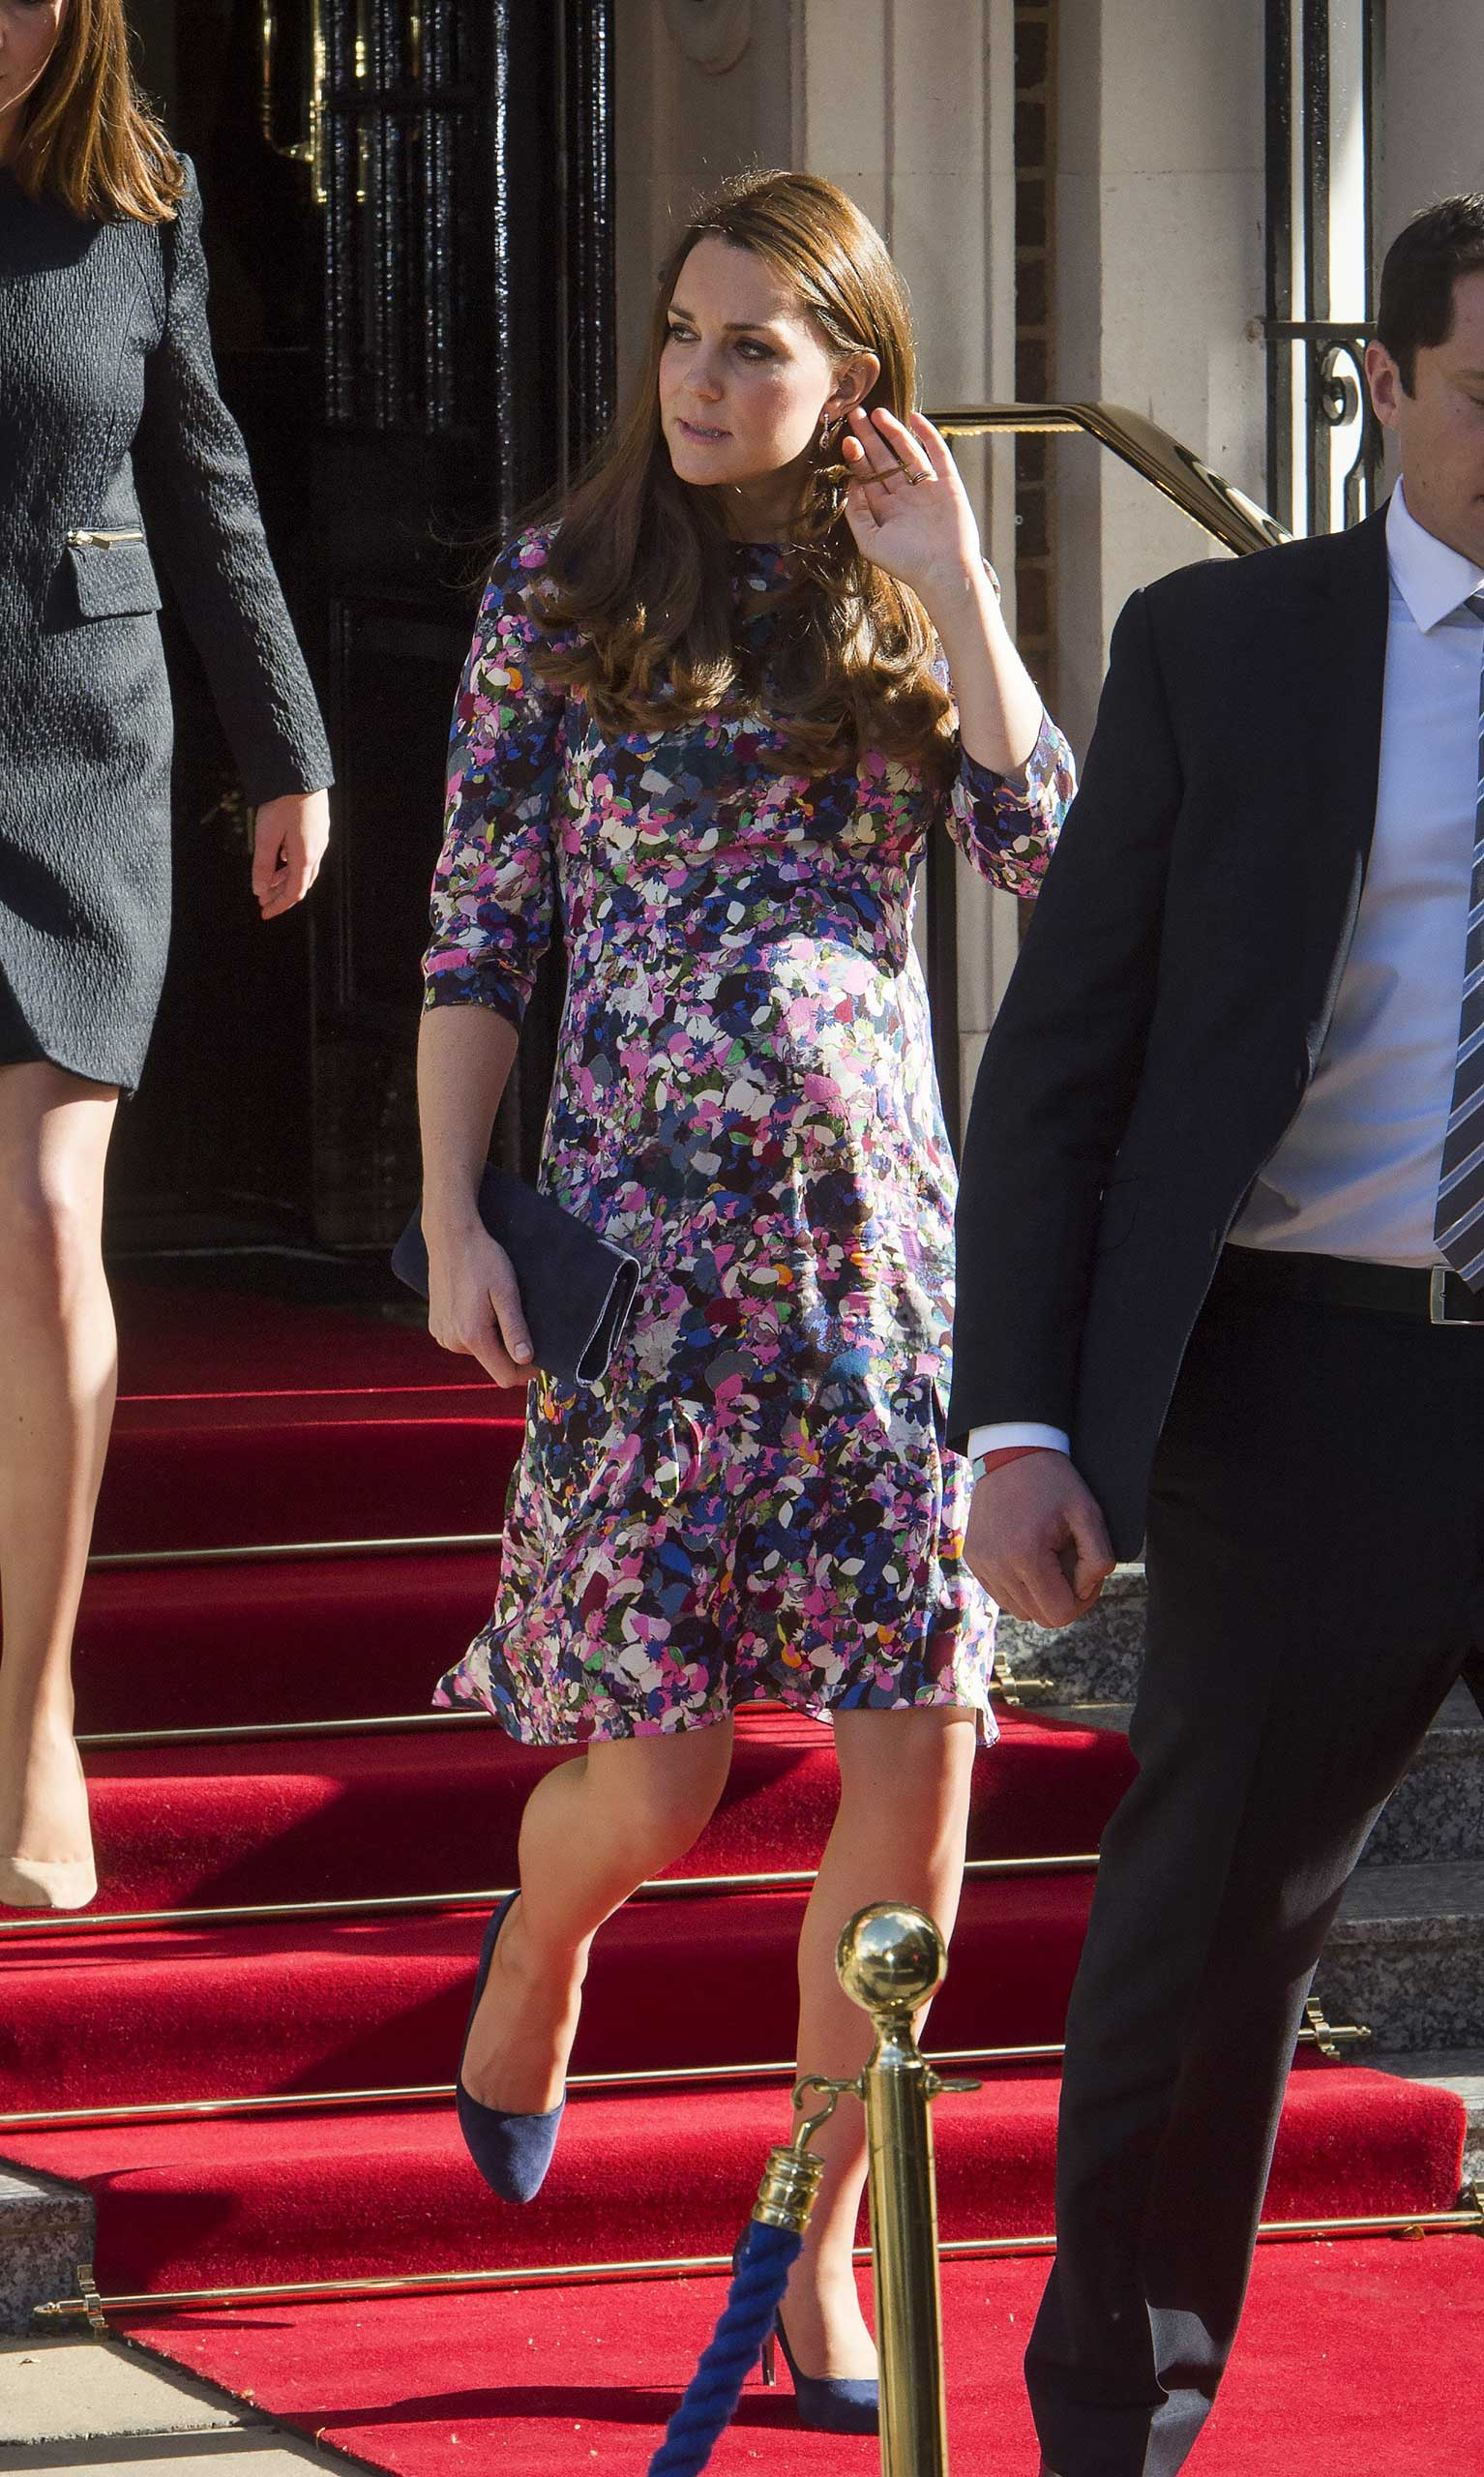 Catherine Duchess of Cambridge leaves The Goring Hotel in Victoria, London on March 2, 2015.